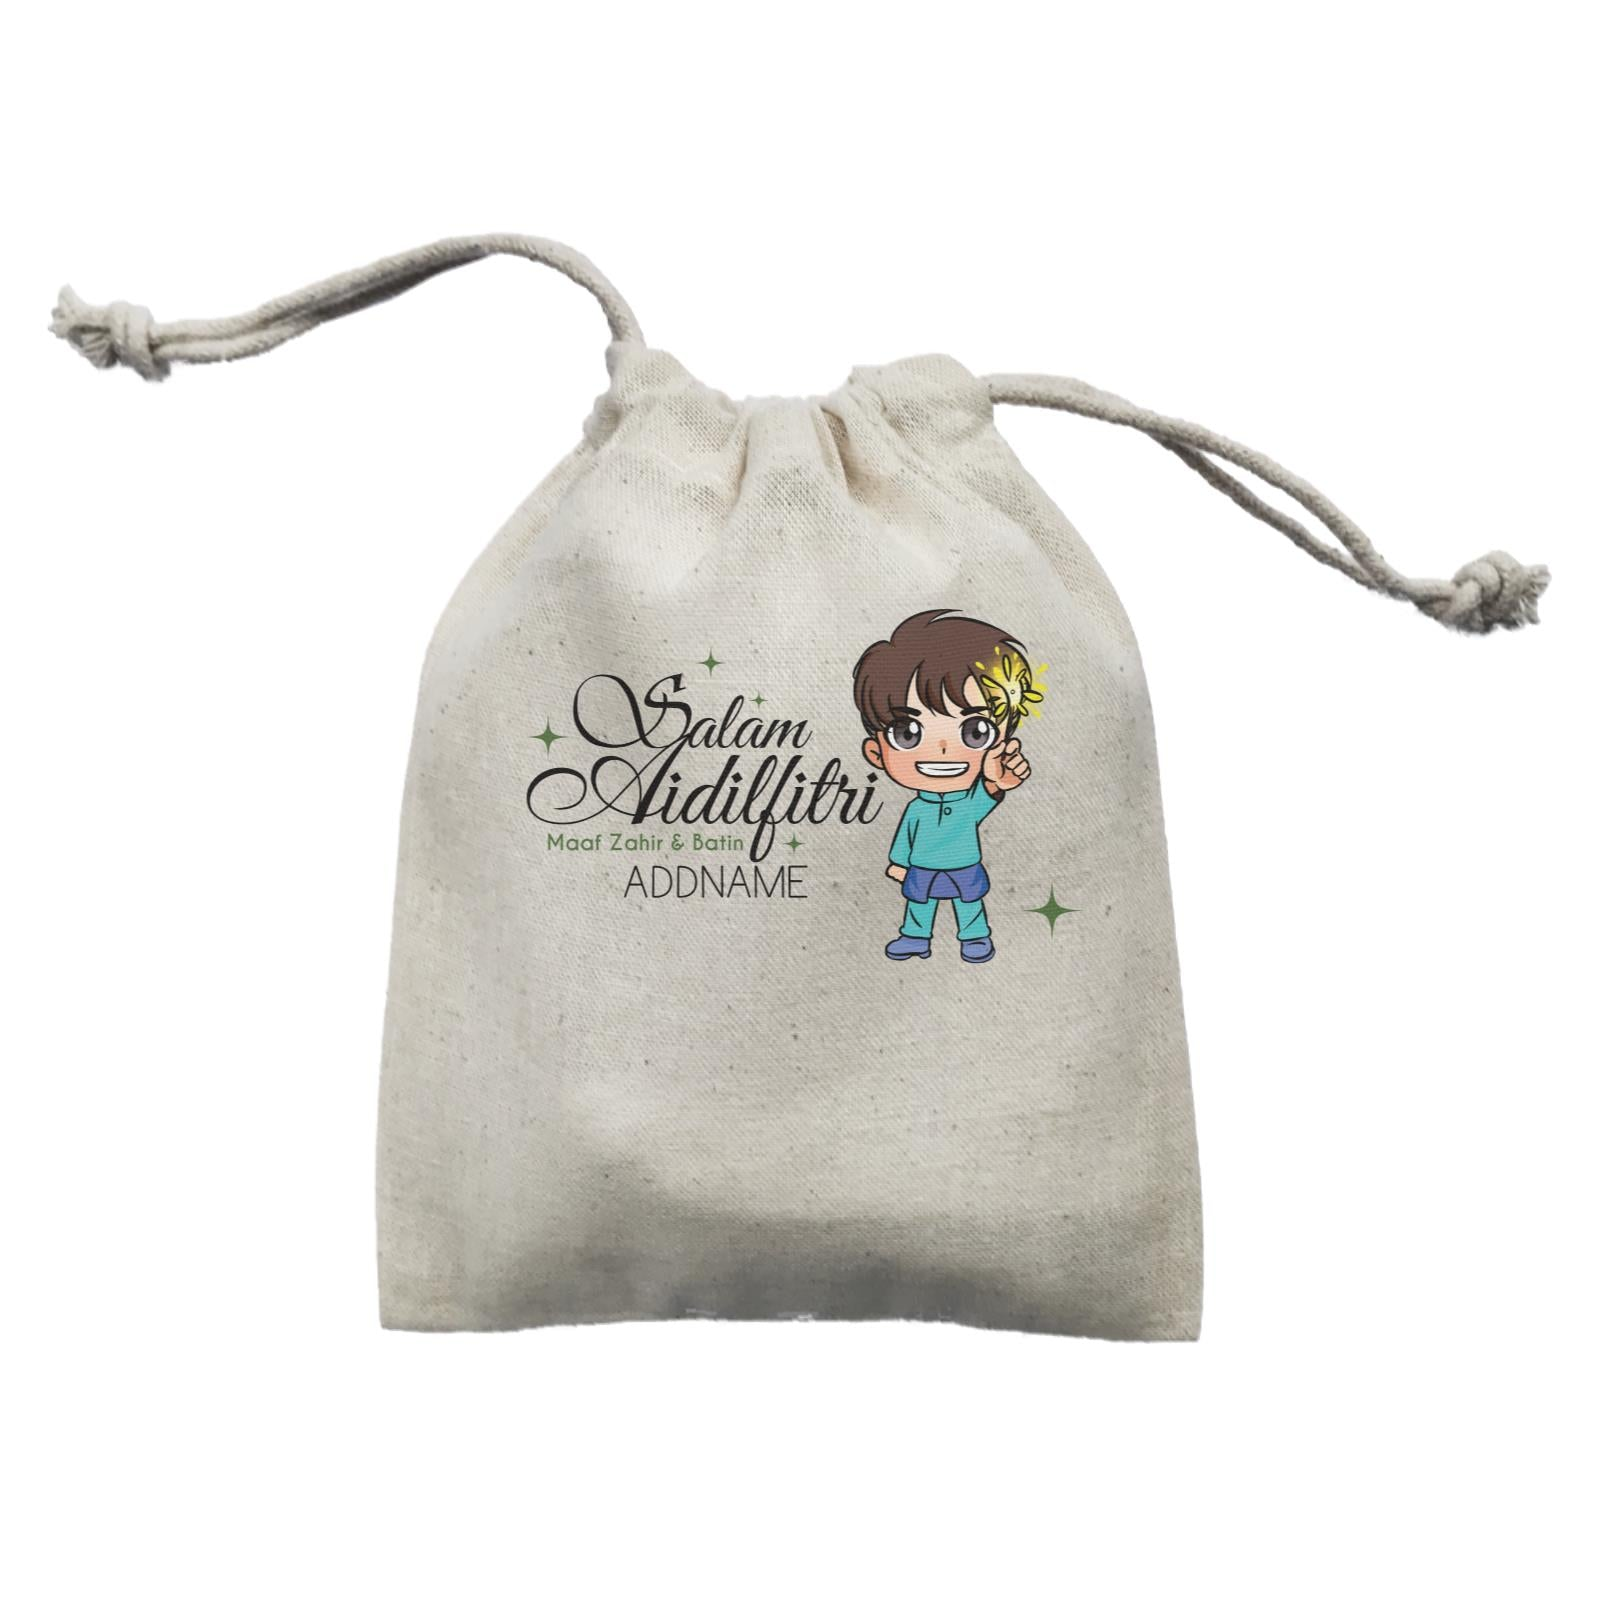 Raya Chibi Wishes Little Boy Addname Wishes Everyone Salam Aidilfitri Maaf Zahir & Batin Mini Accessories Mini Pouch